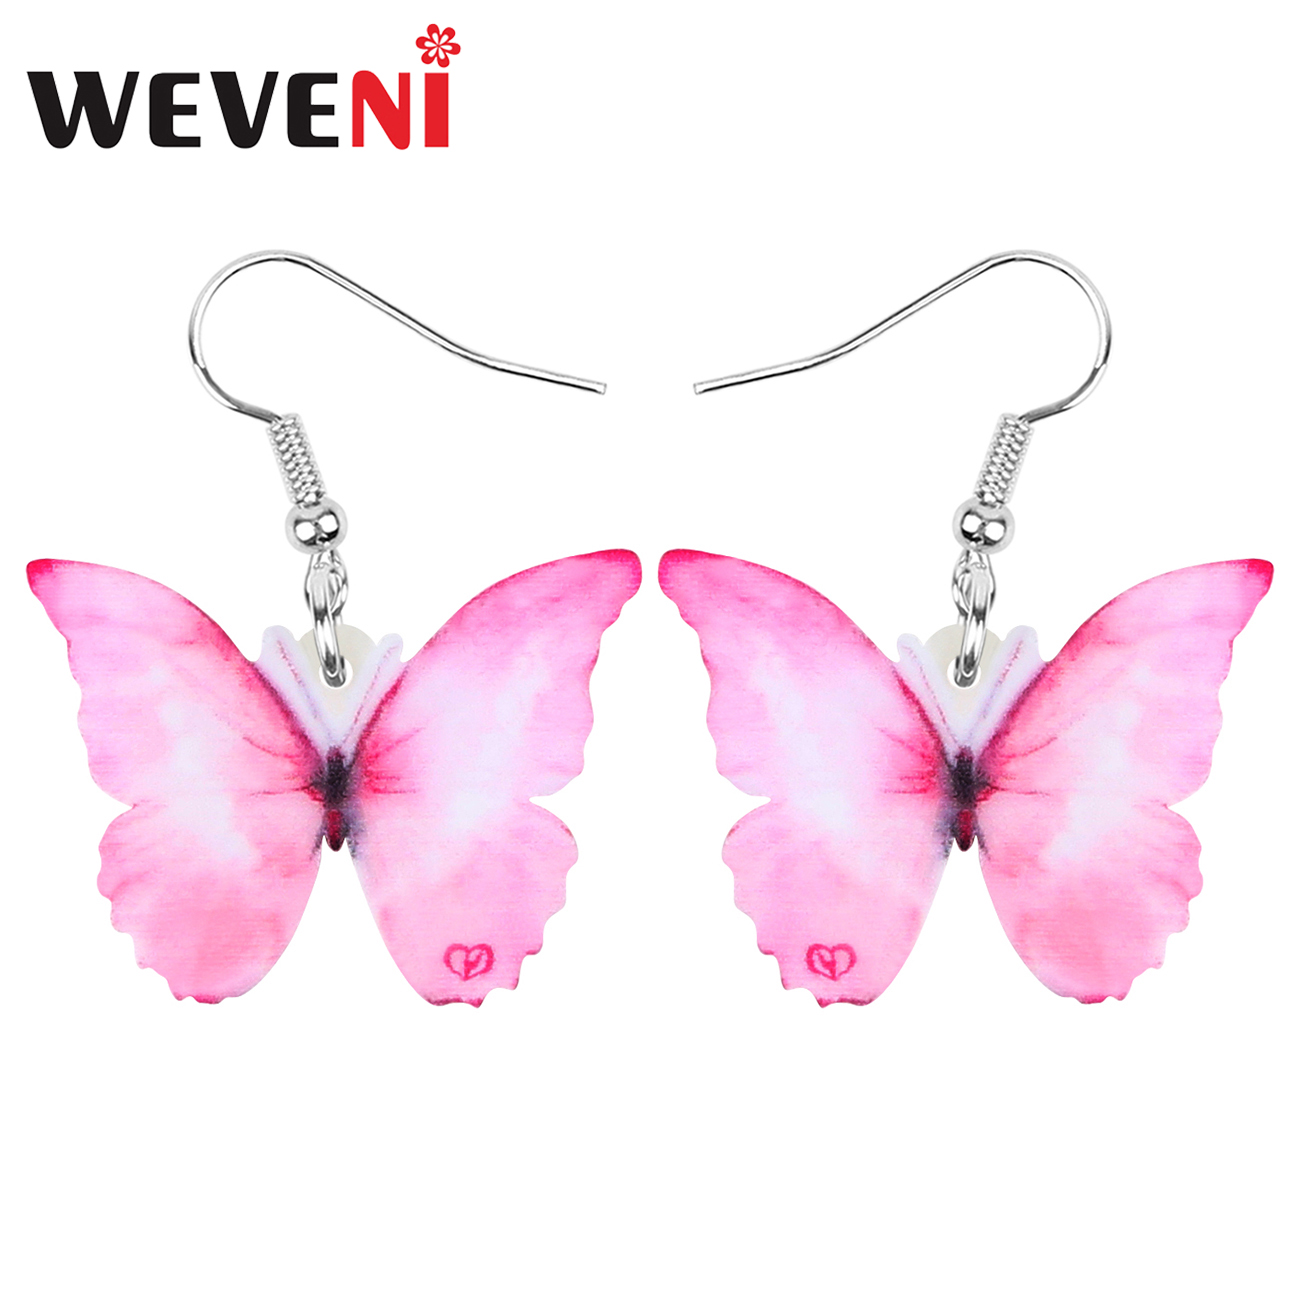 WEVENI Acrylic Morpho Butterfly Insect Earrings Big Printing Animal Dangle Drop For Women Girls Kids Spring Fashion Gift Jewelry